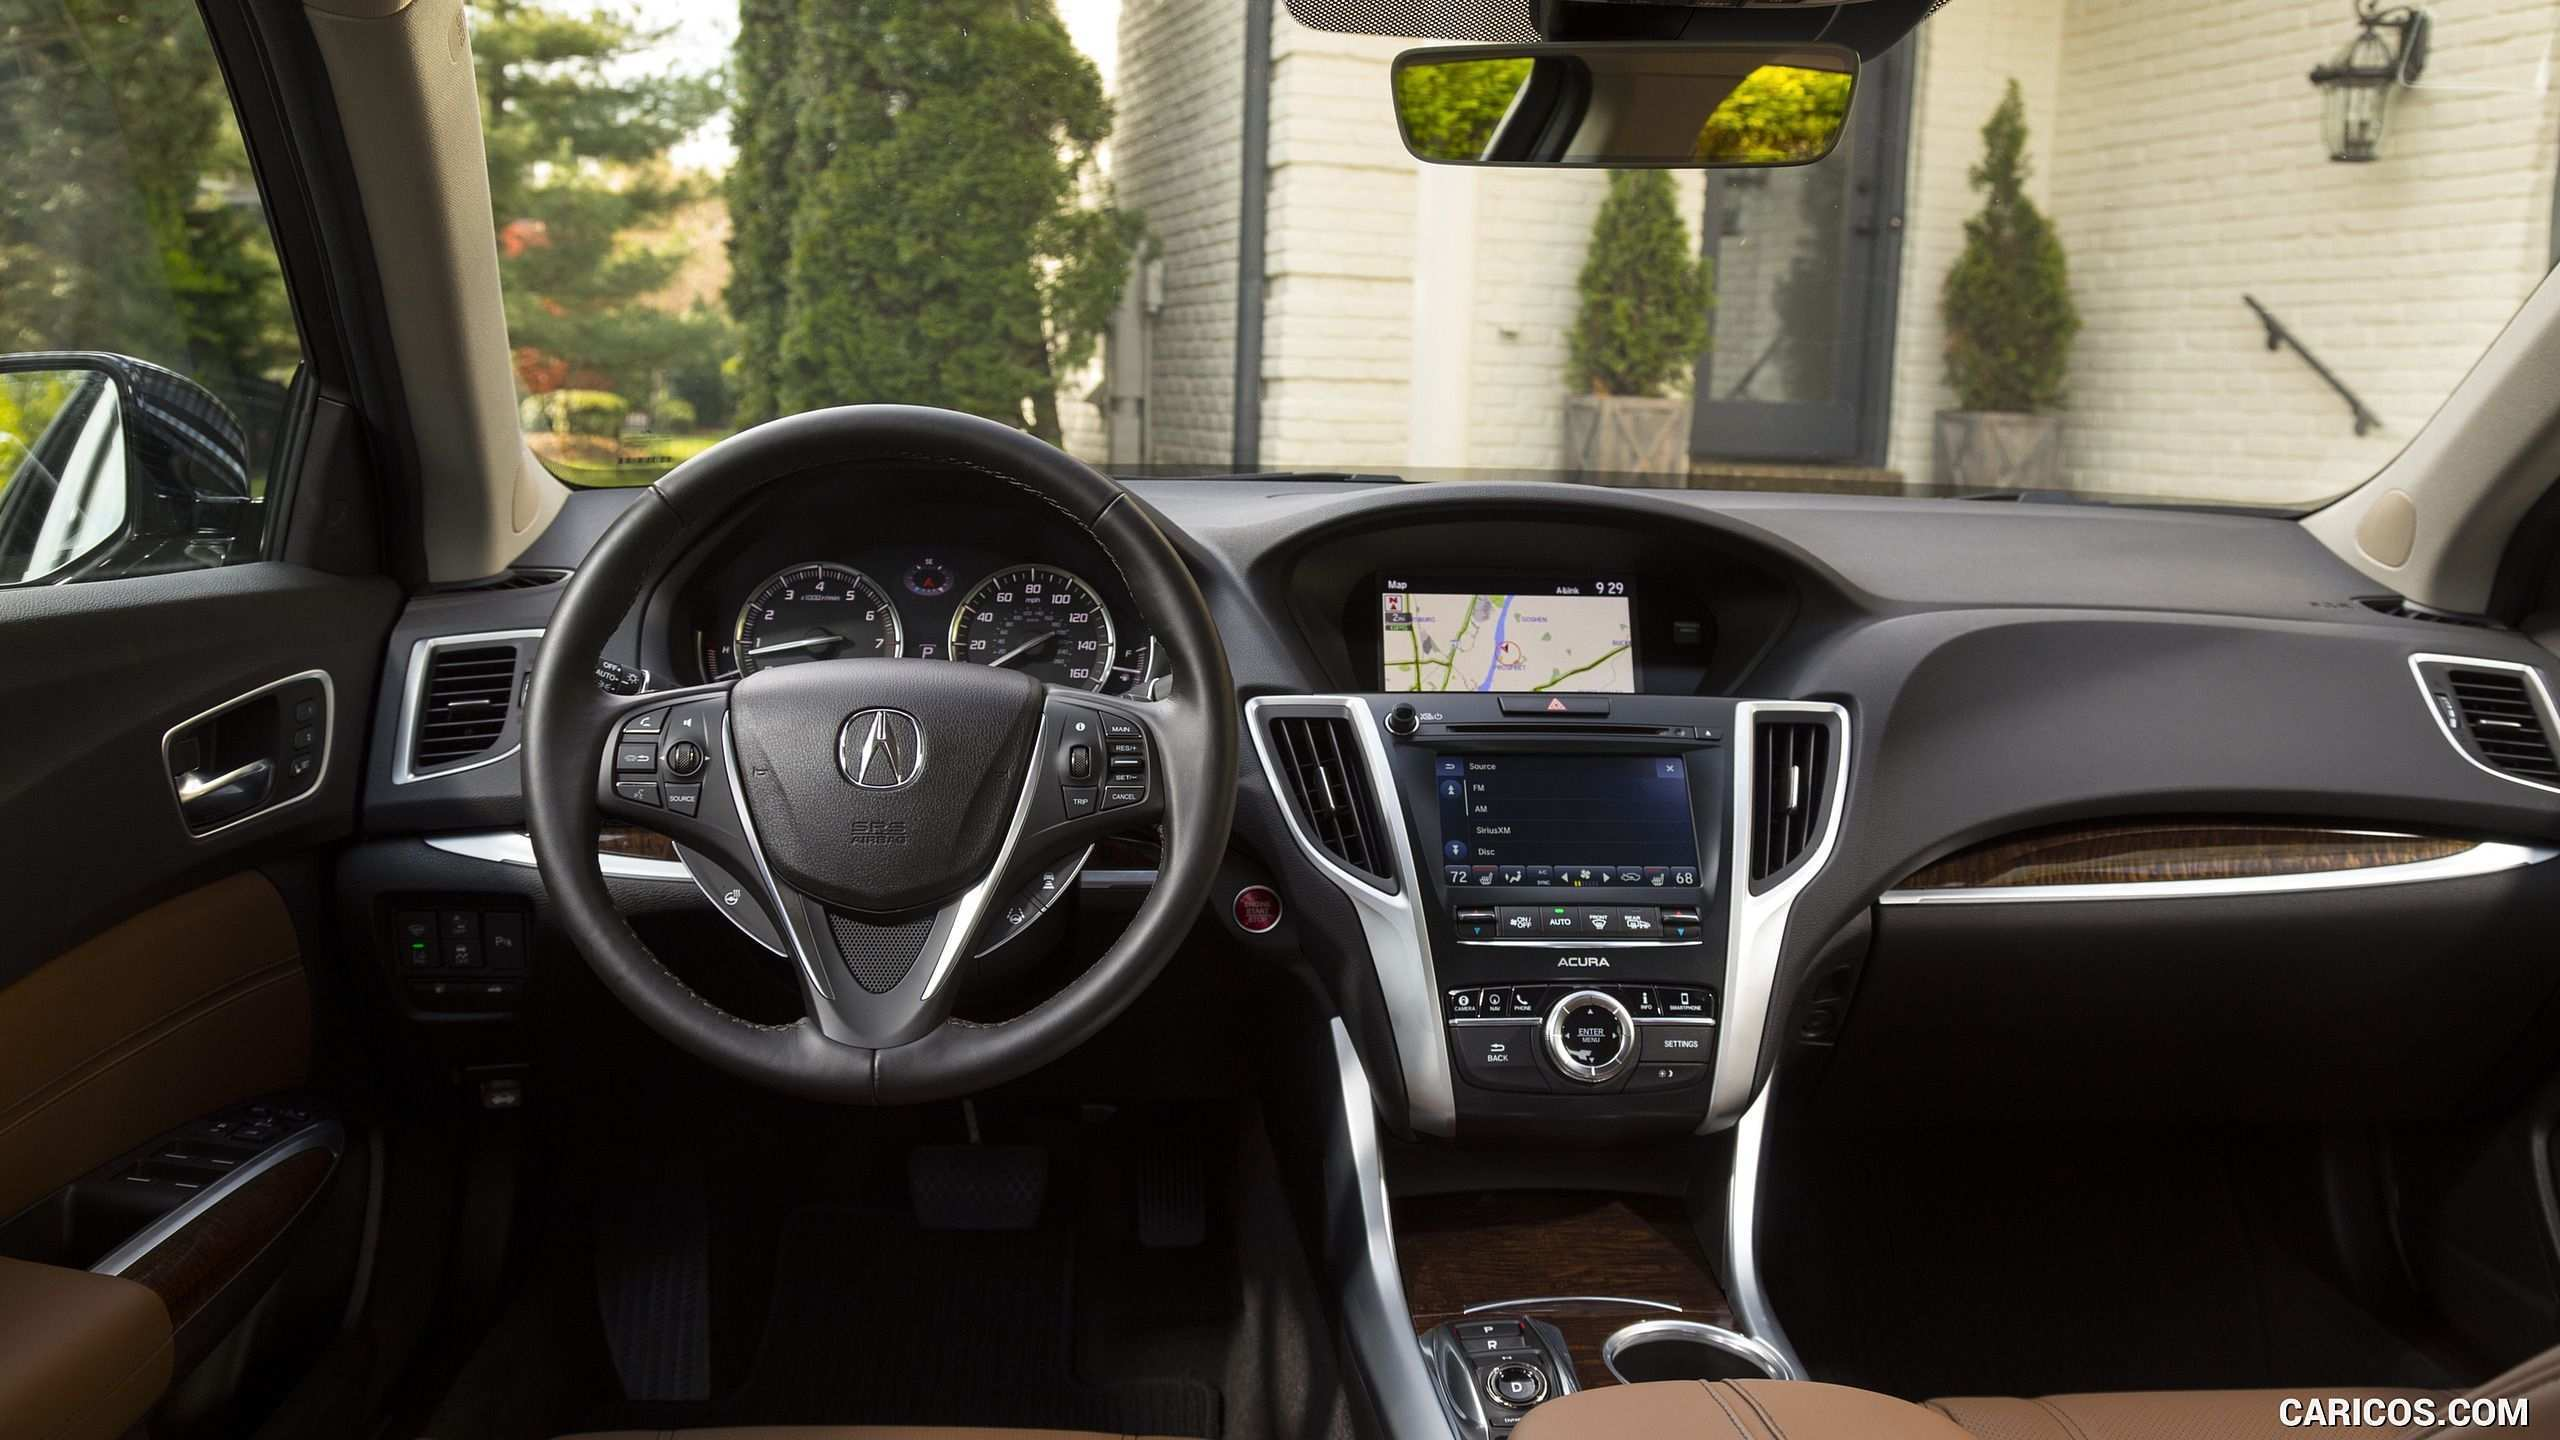 30 New Acura Tlx 2019 Review Interior New Review for Acura Tlx 2019 Review Interior